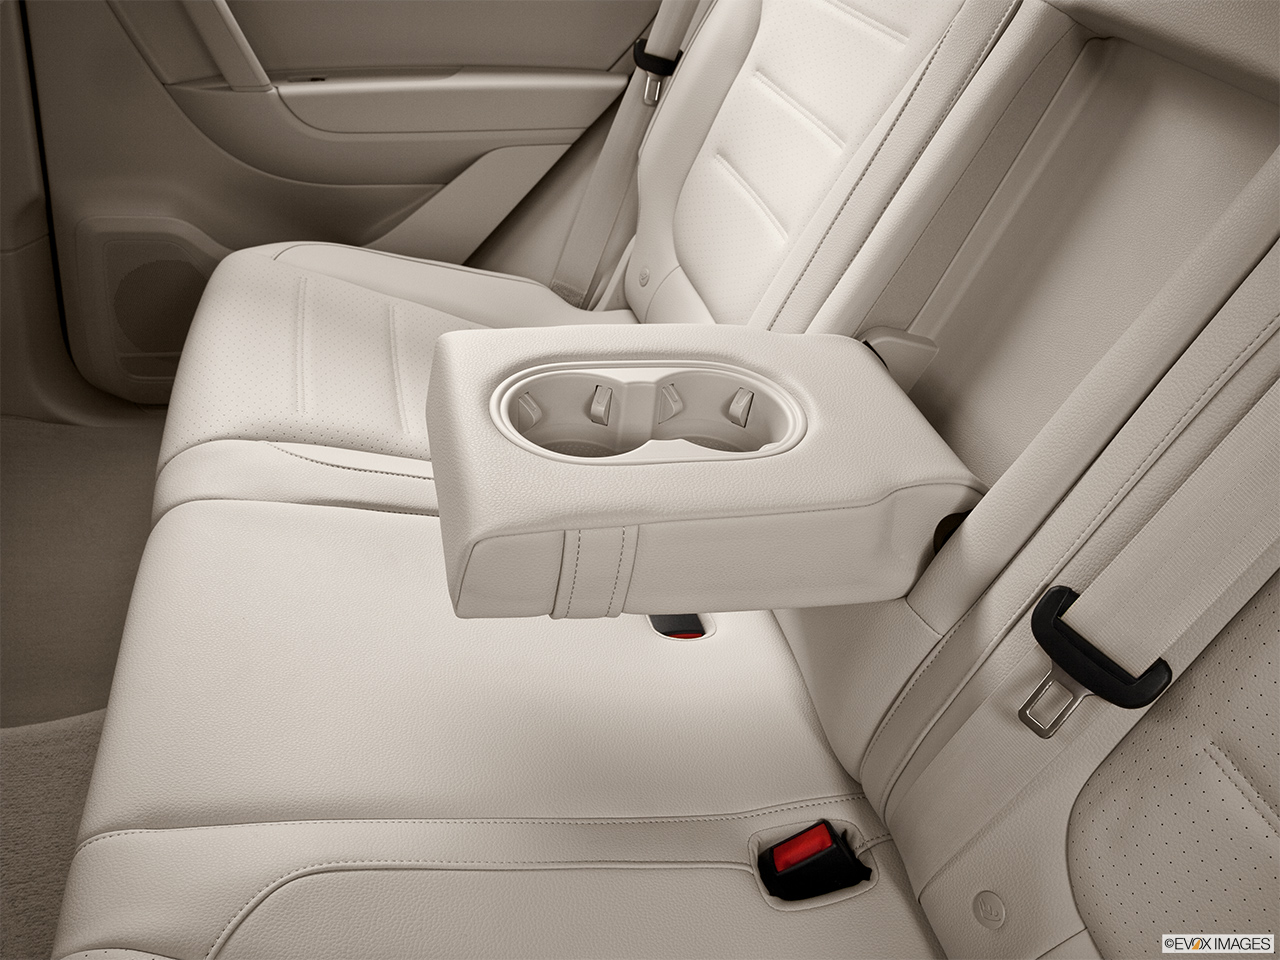 2014 Volkswagen Touareg 2 V6 Sport Rear center console with closed lid from driver's side looking down.